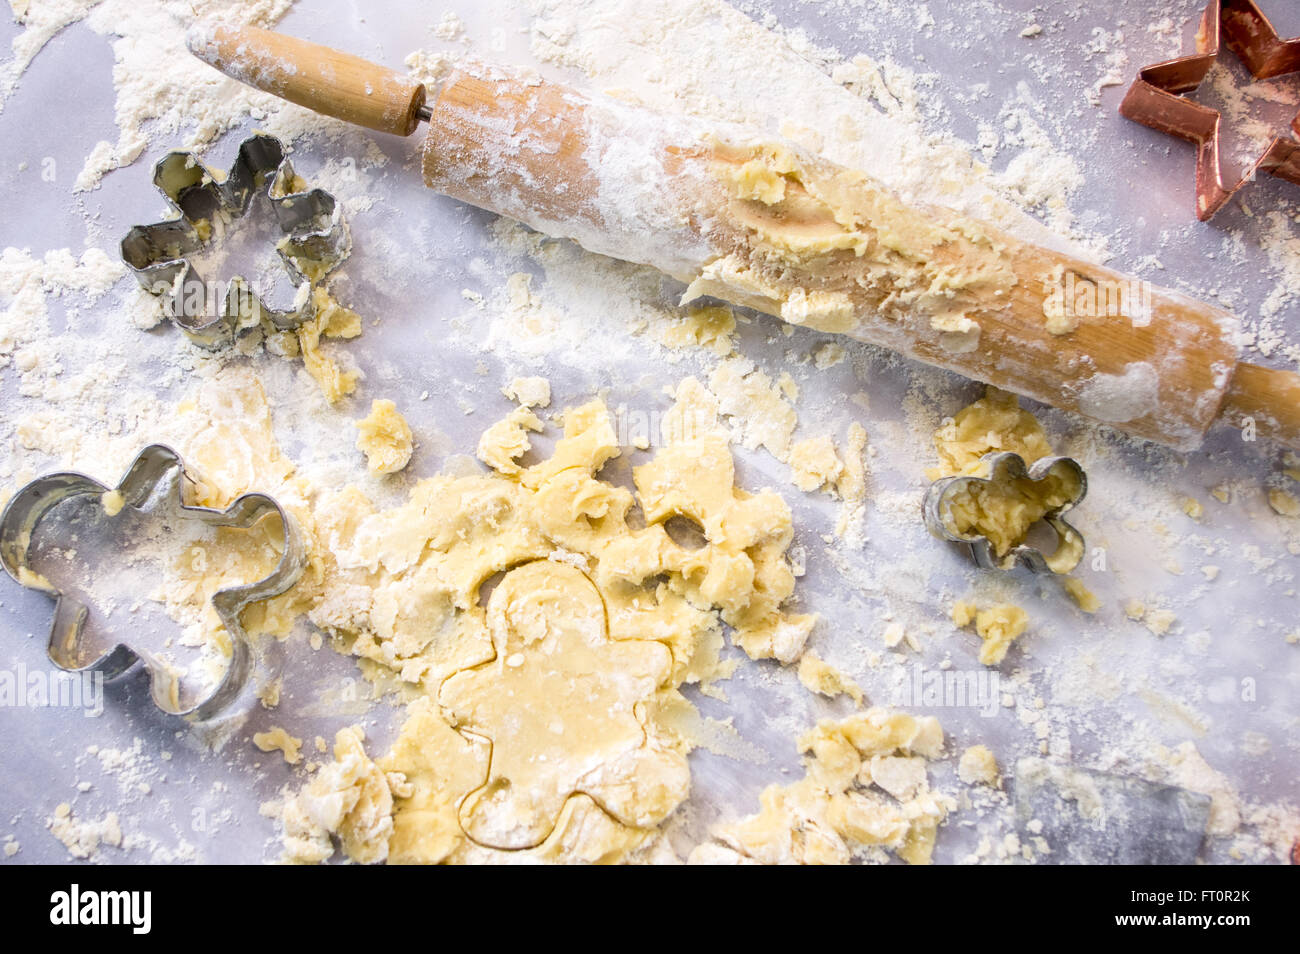 Baking Holiday Cookies (Messy Counter)Stock Photo